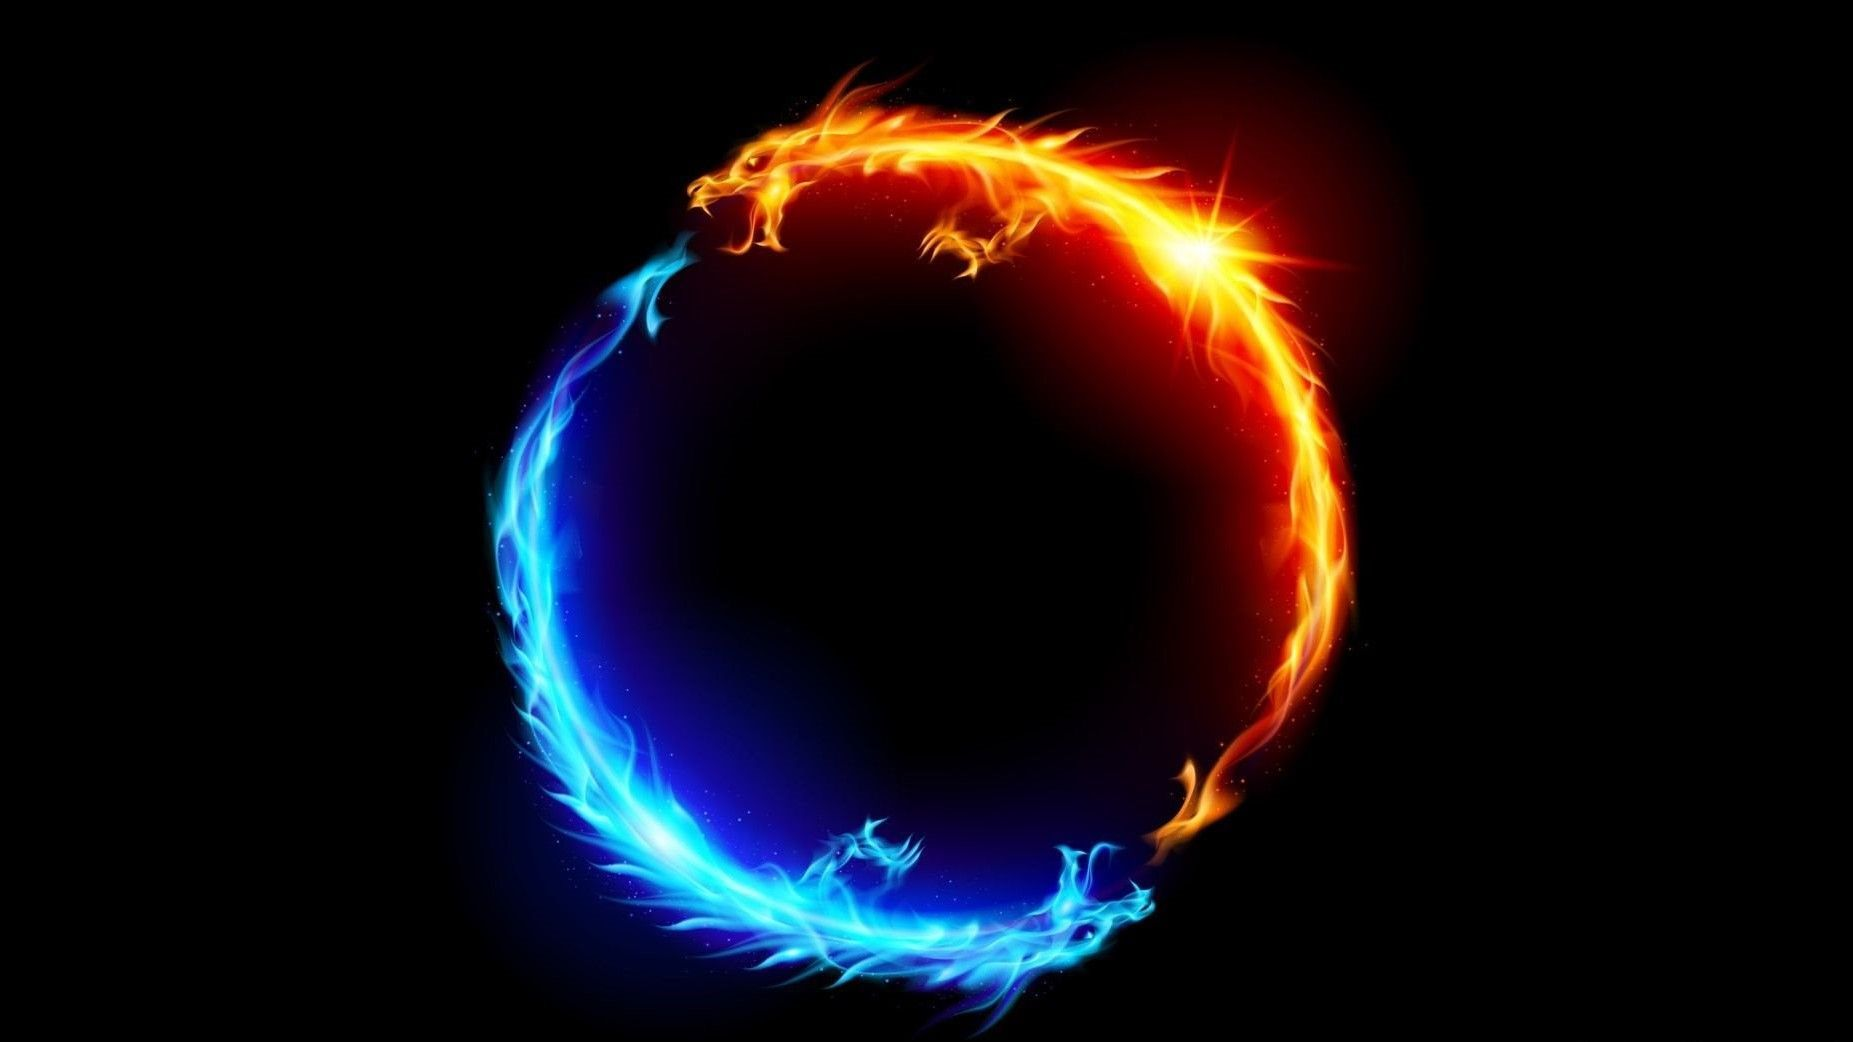 Download Fire And Ice Dragon Wallpaper Top Free Awesome